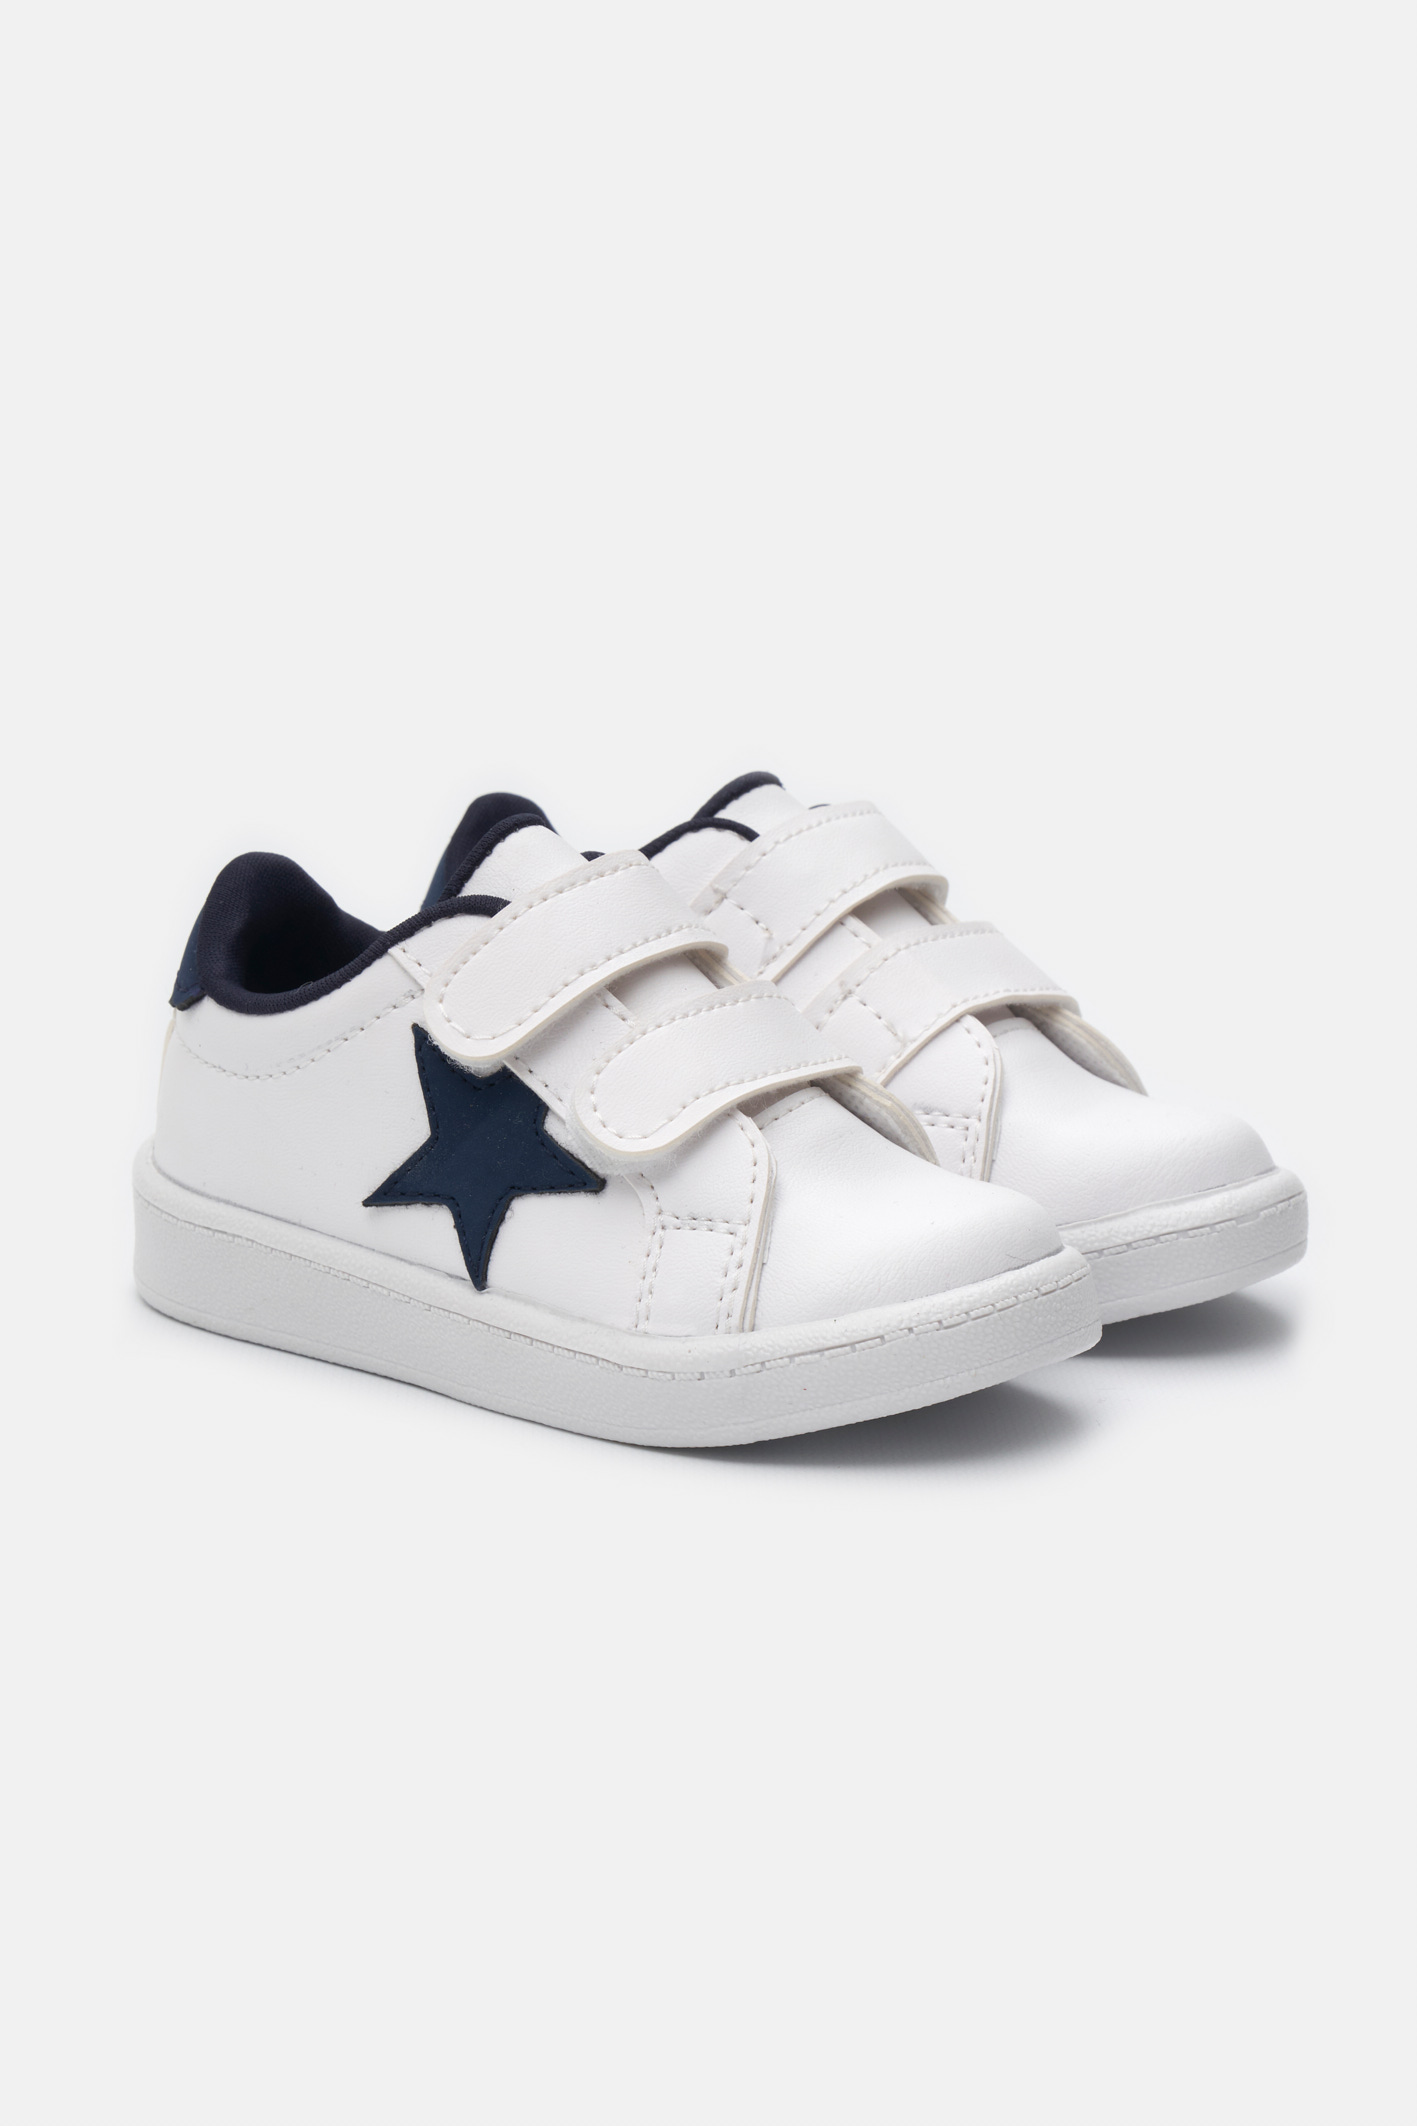 cheeky_zapatillas-kyle-18-24_22-25-2021__picture-83655